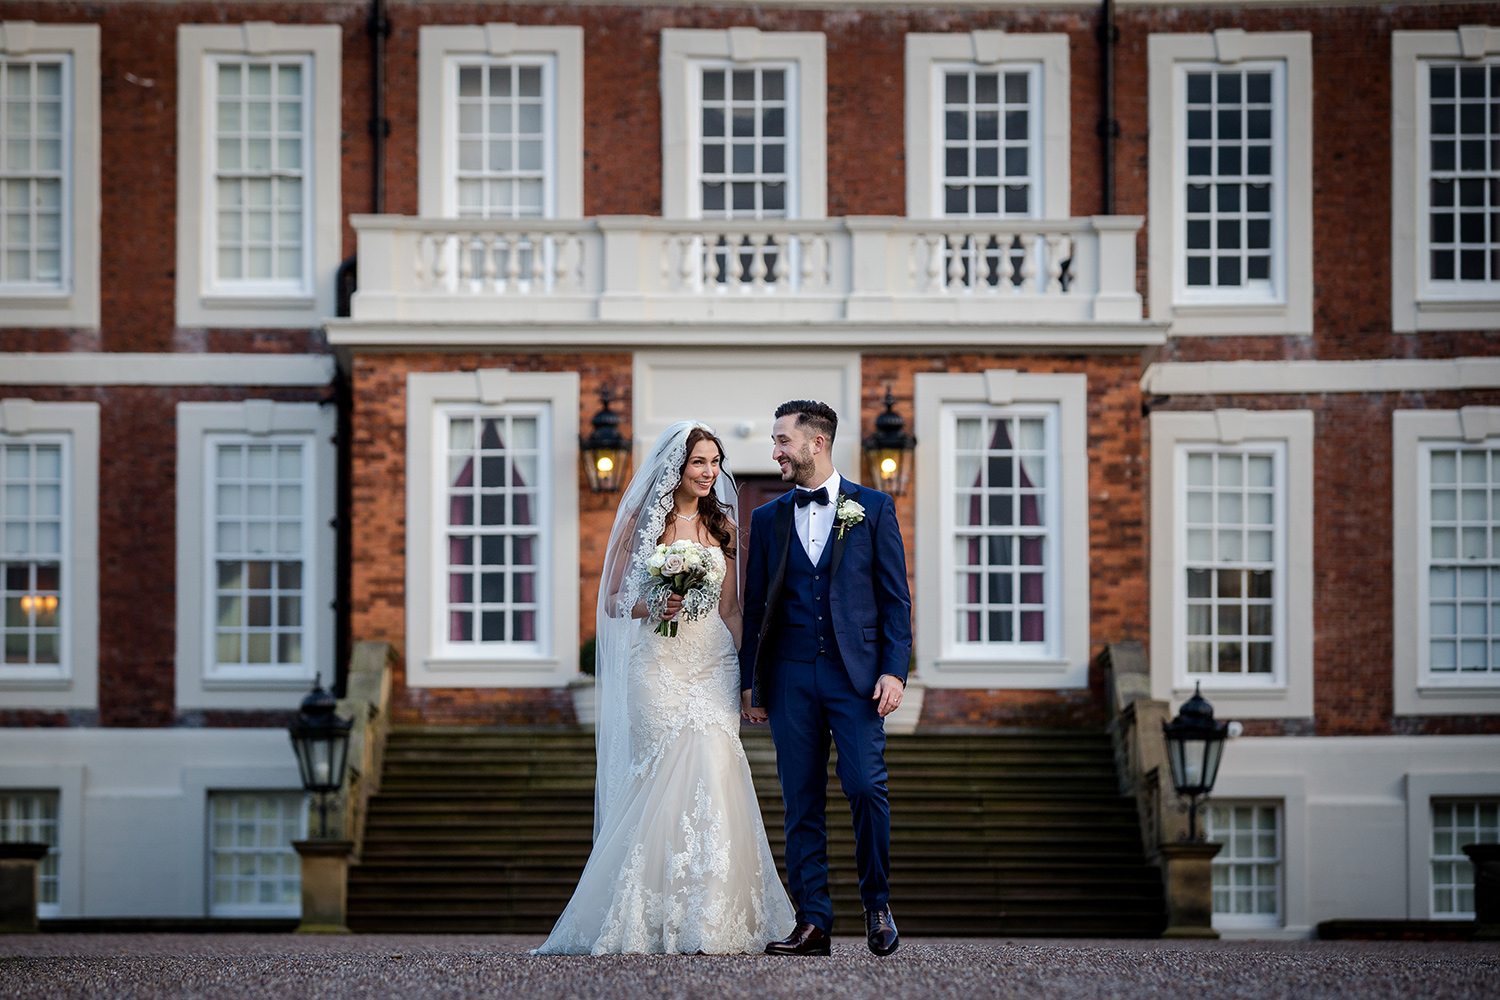 The bride and groom go for a stroll during their Knowsley Hall Wedding